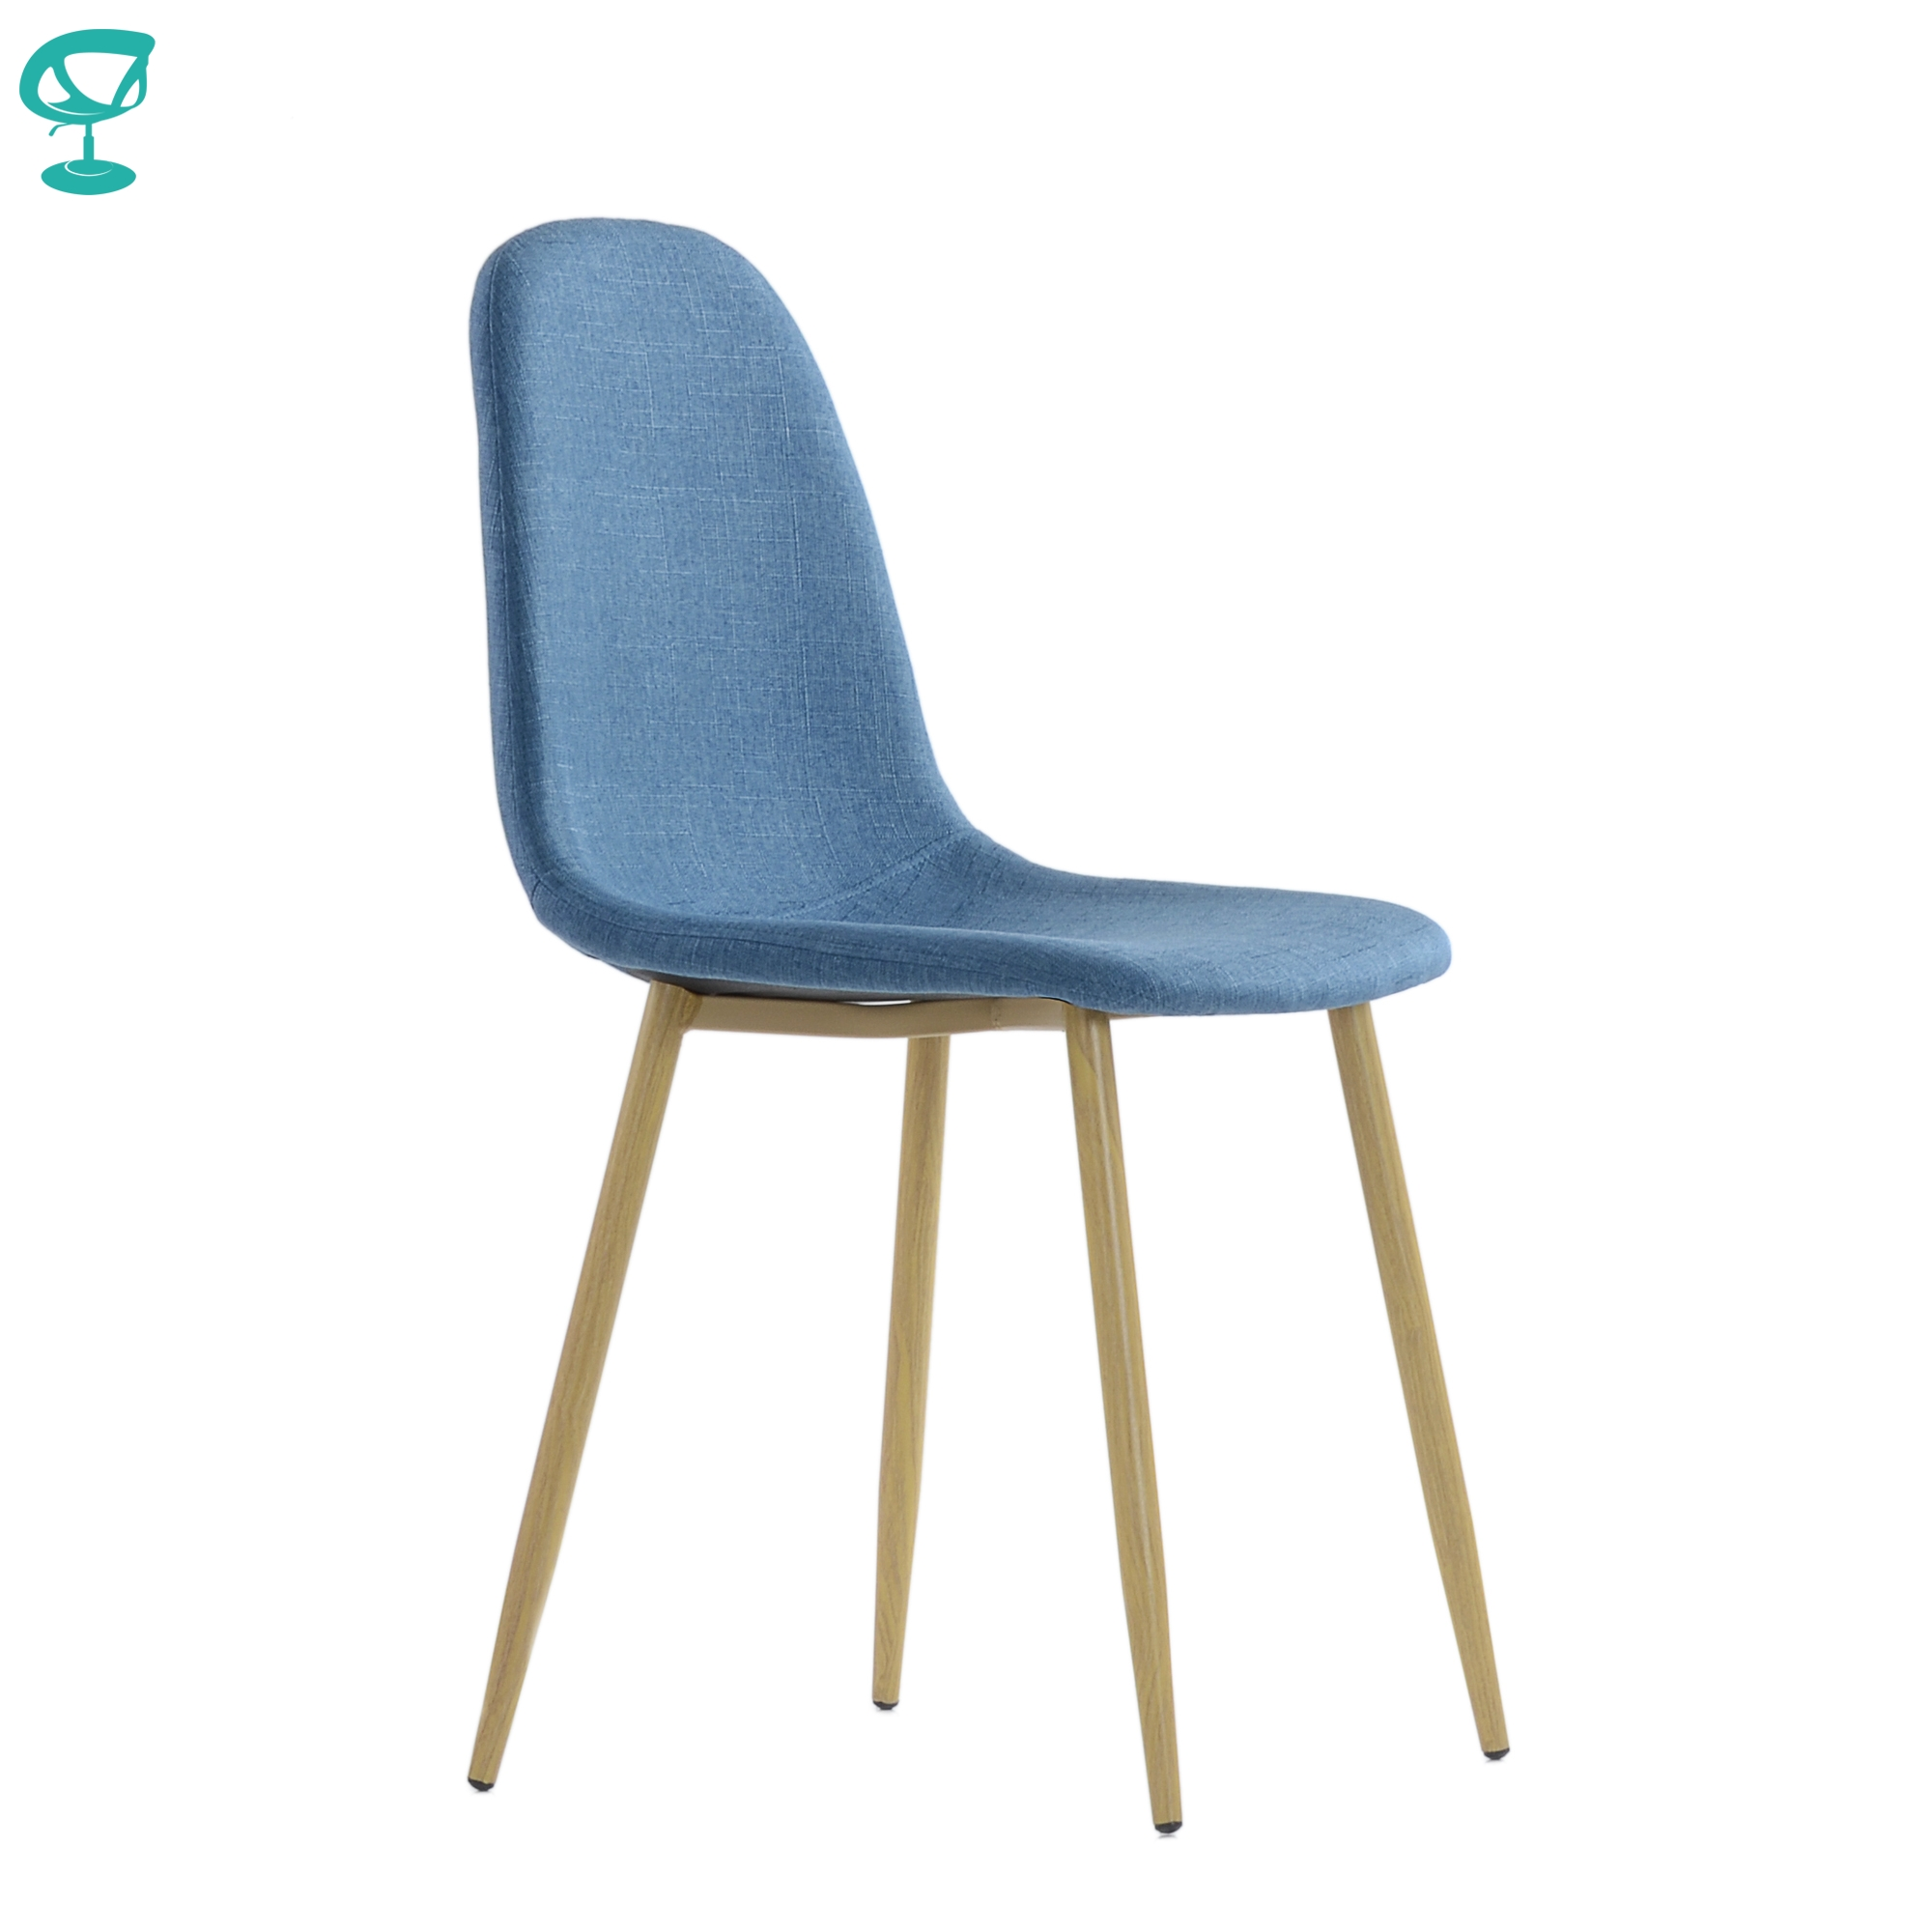 95745 Barneo S-15 Blue Kitchen Chair Legs Metal Seat Fabric Chair For Living Room Chair Dining Table Chair Furniture For Kitchen